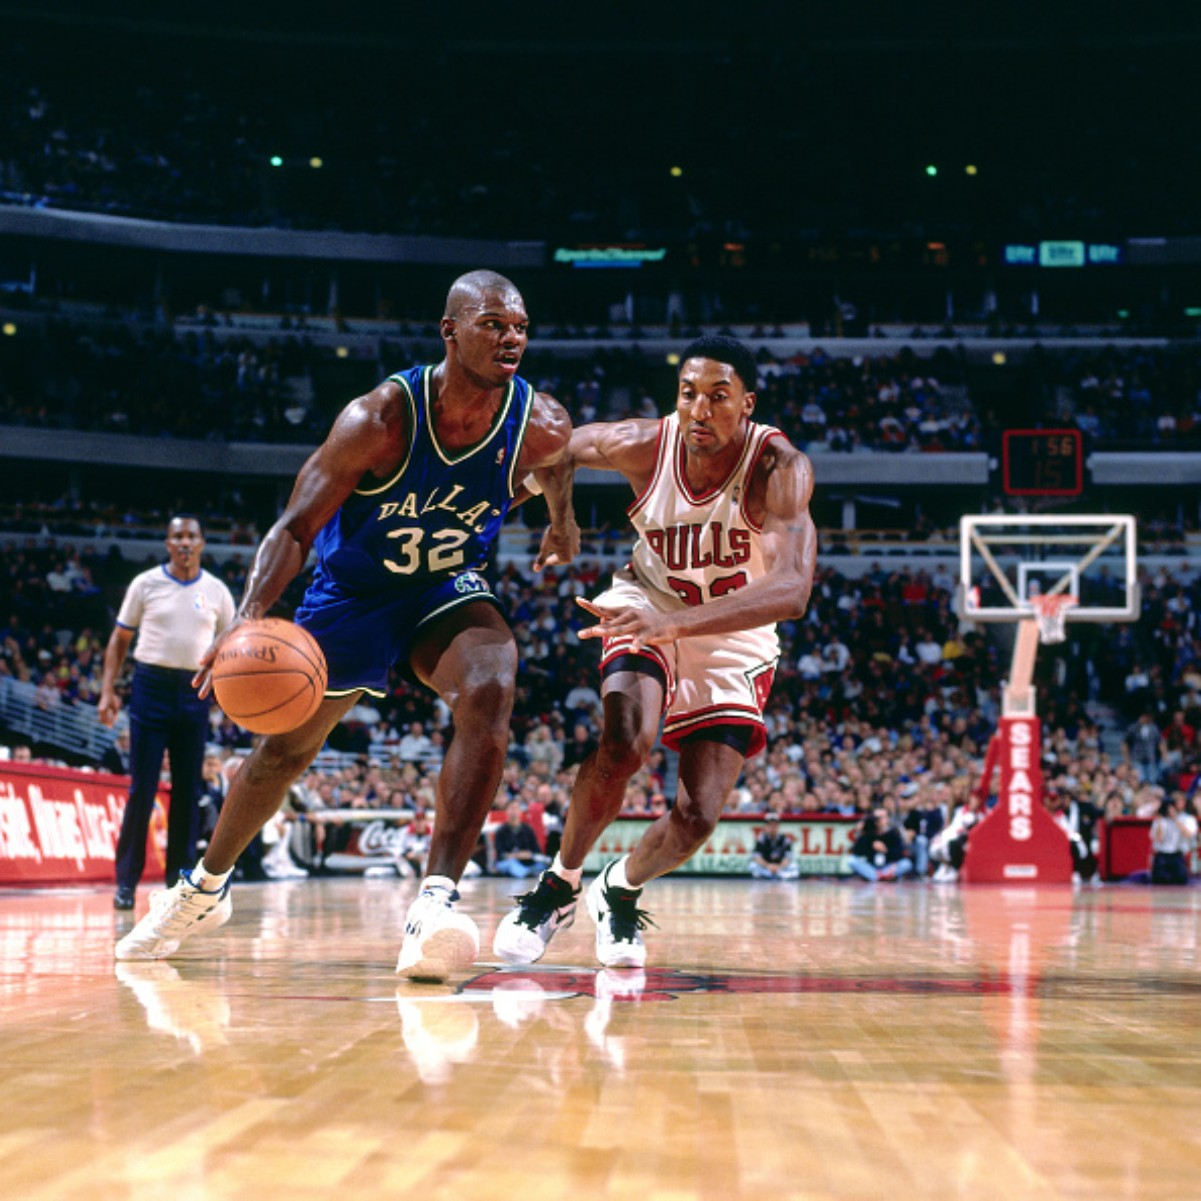 Jamal Mashburn spent 12 seasons in the NBA playing for four different teams